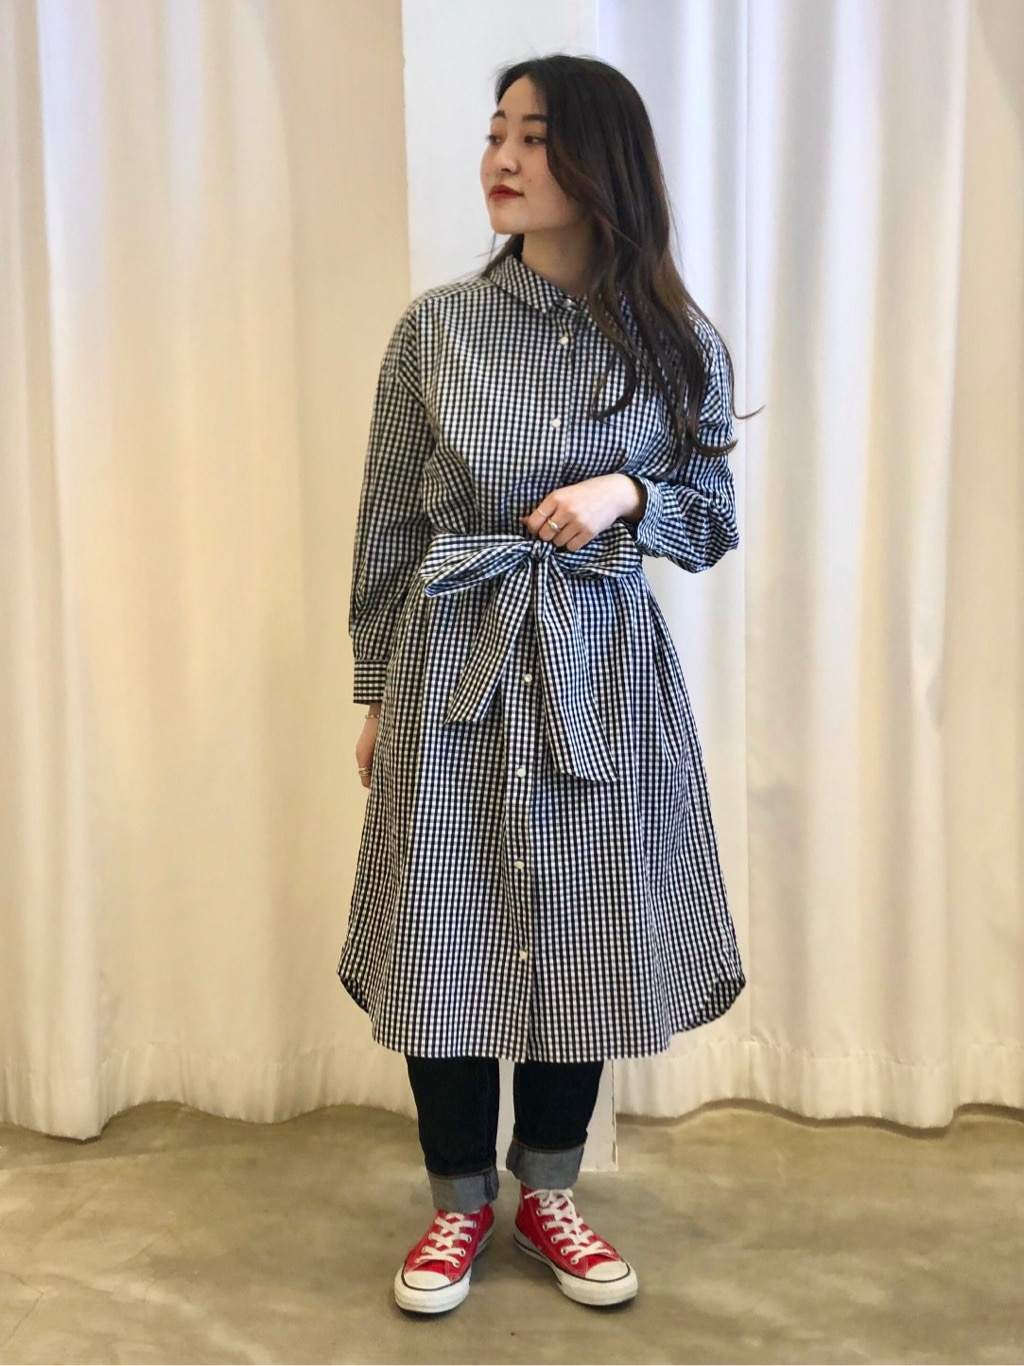 Dot and Stripes CHILD WOMAN ラフォーレ原宿 身長:153cm 2021.03.02